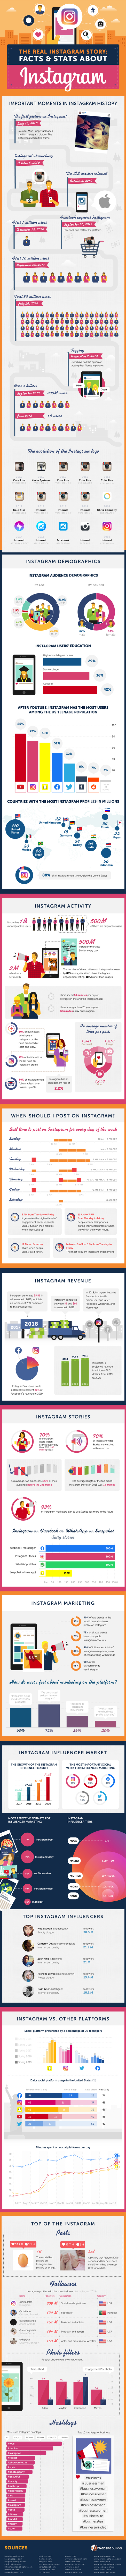 instagram demographics 13 impressive statistics about instagram users 32 Incredible Instagram Statistics Facts To Know In 2020